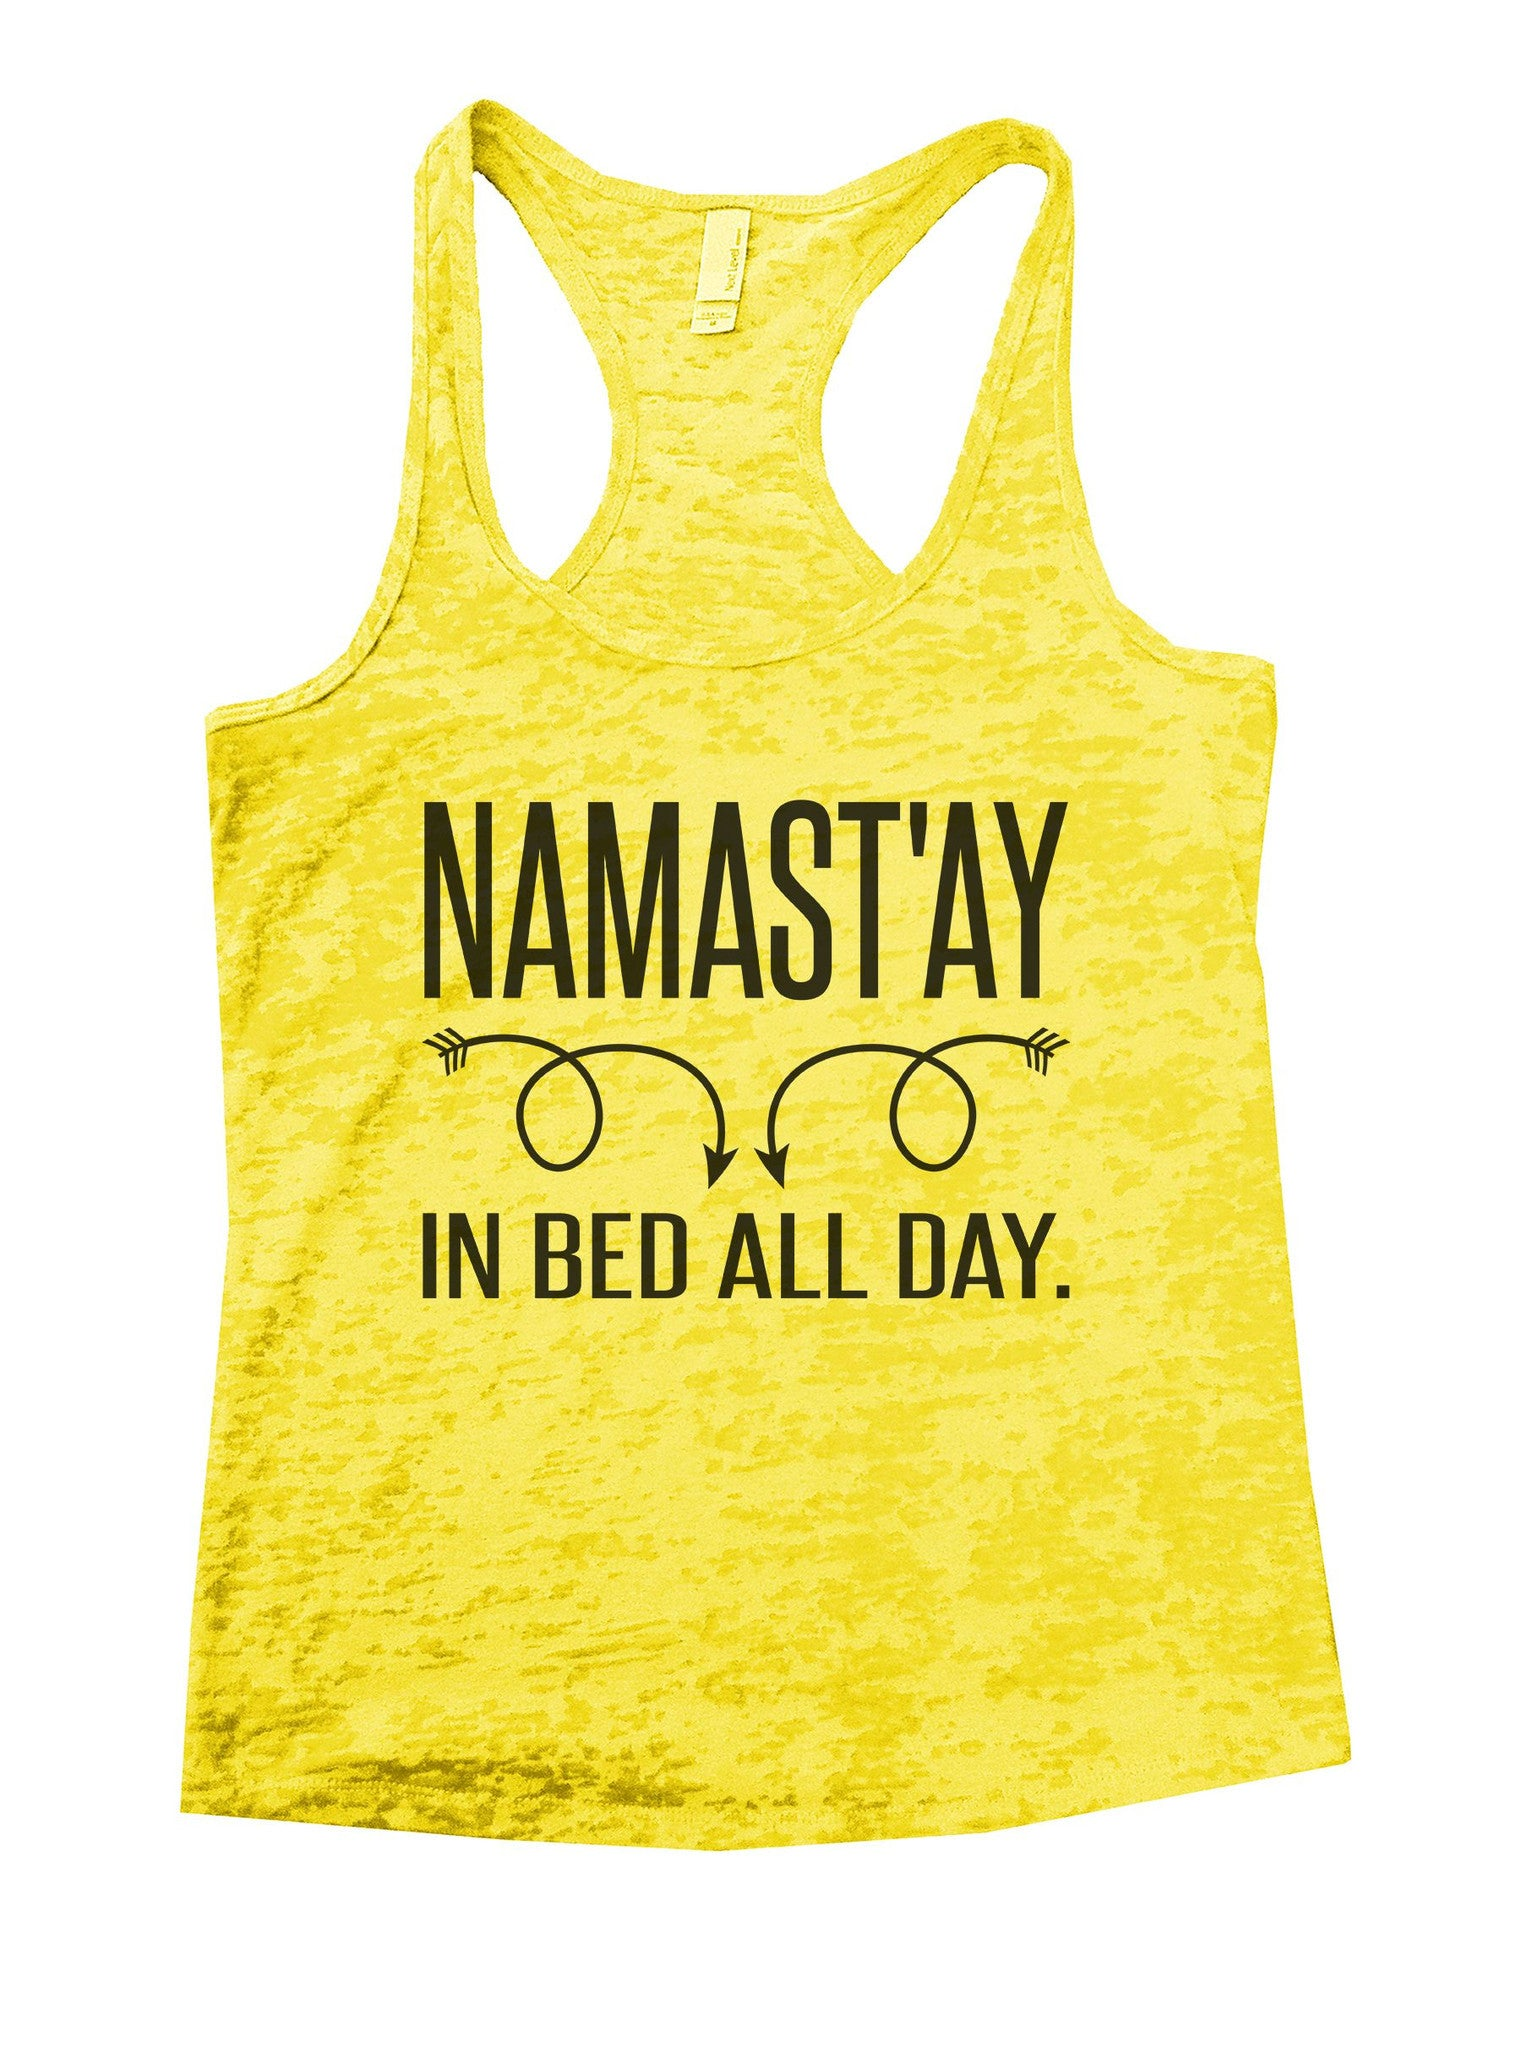 Namastay In Bed All Day Burnout Tank Top By Funny Treadz - 919 - Funny Shirts Tank Tops Burnouts and Triblends  - 6